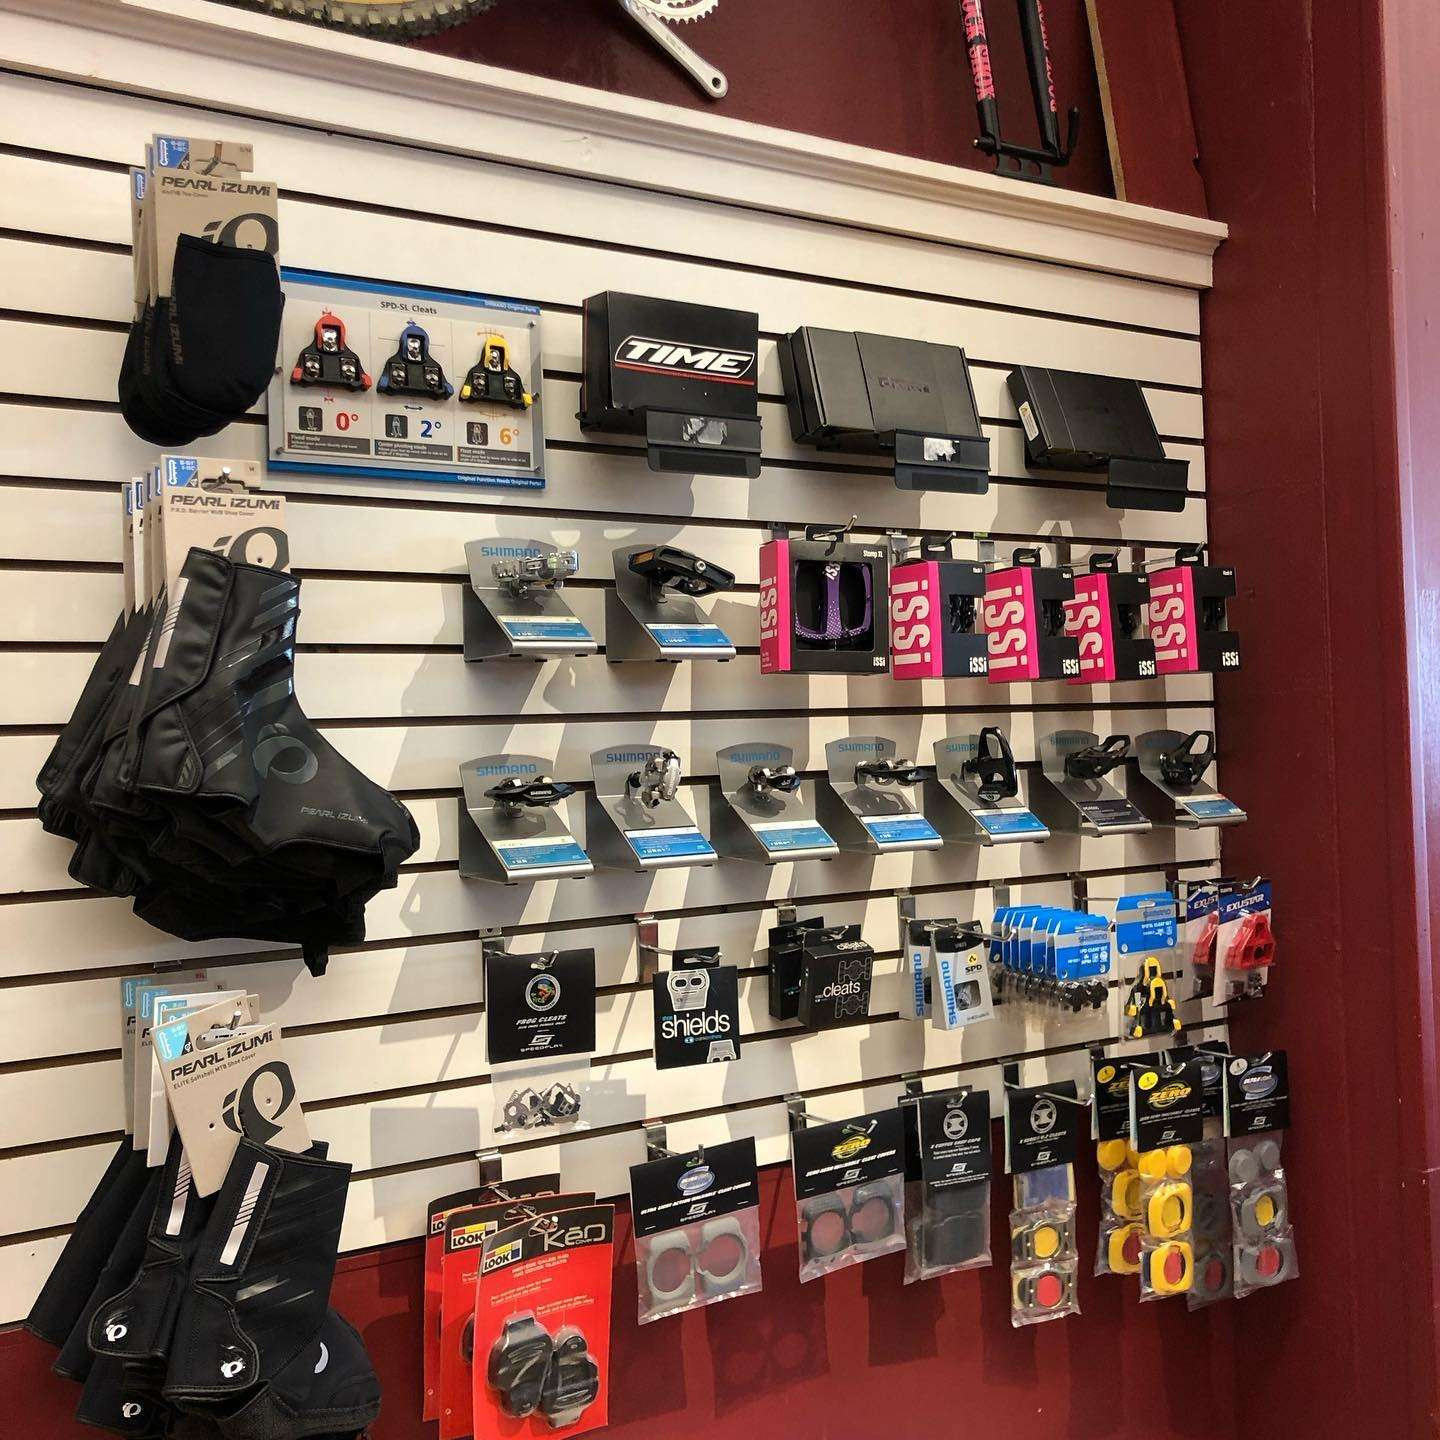 Pedal Power CT Middletown Pedals and Accessories display